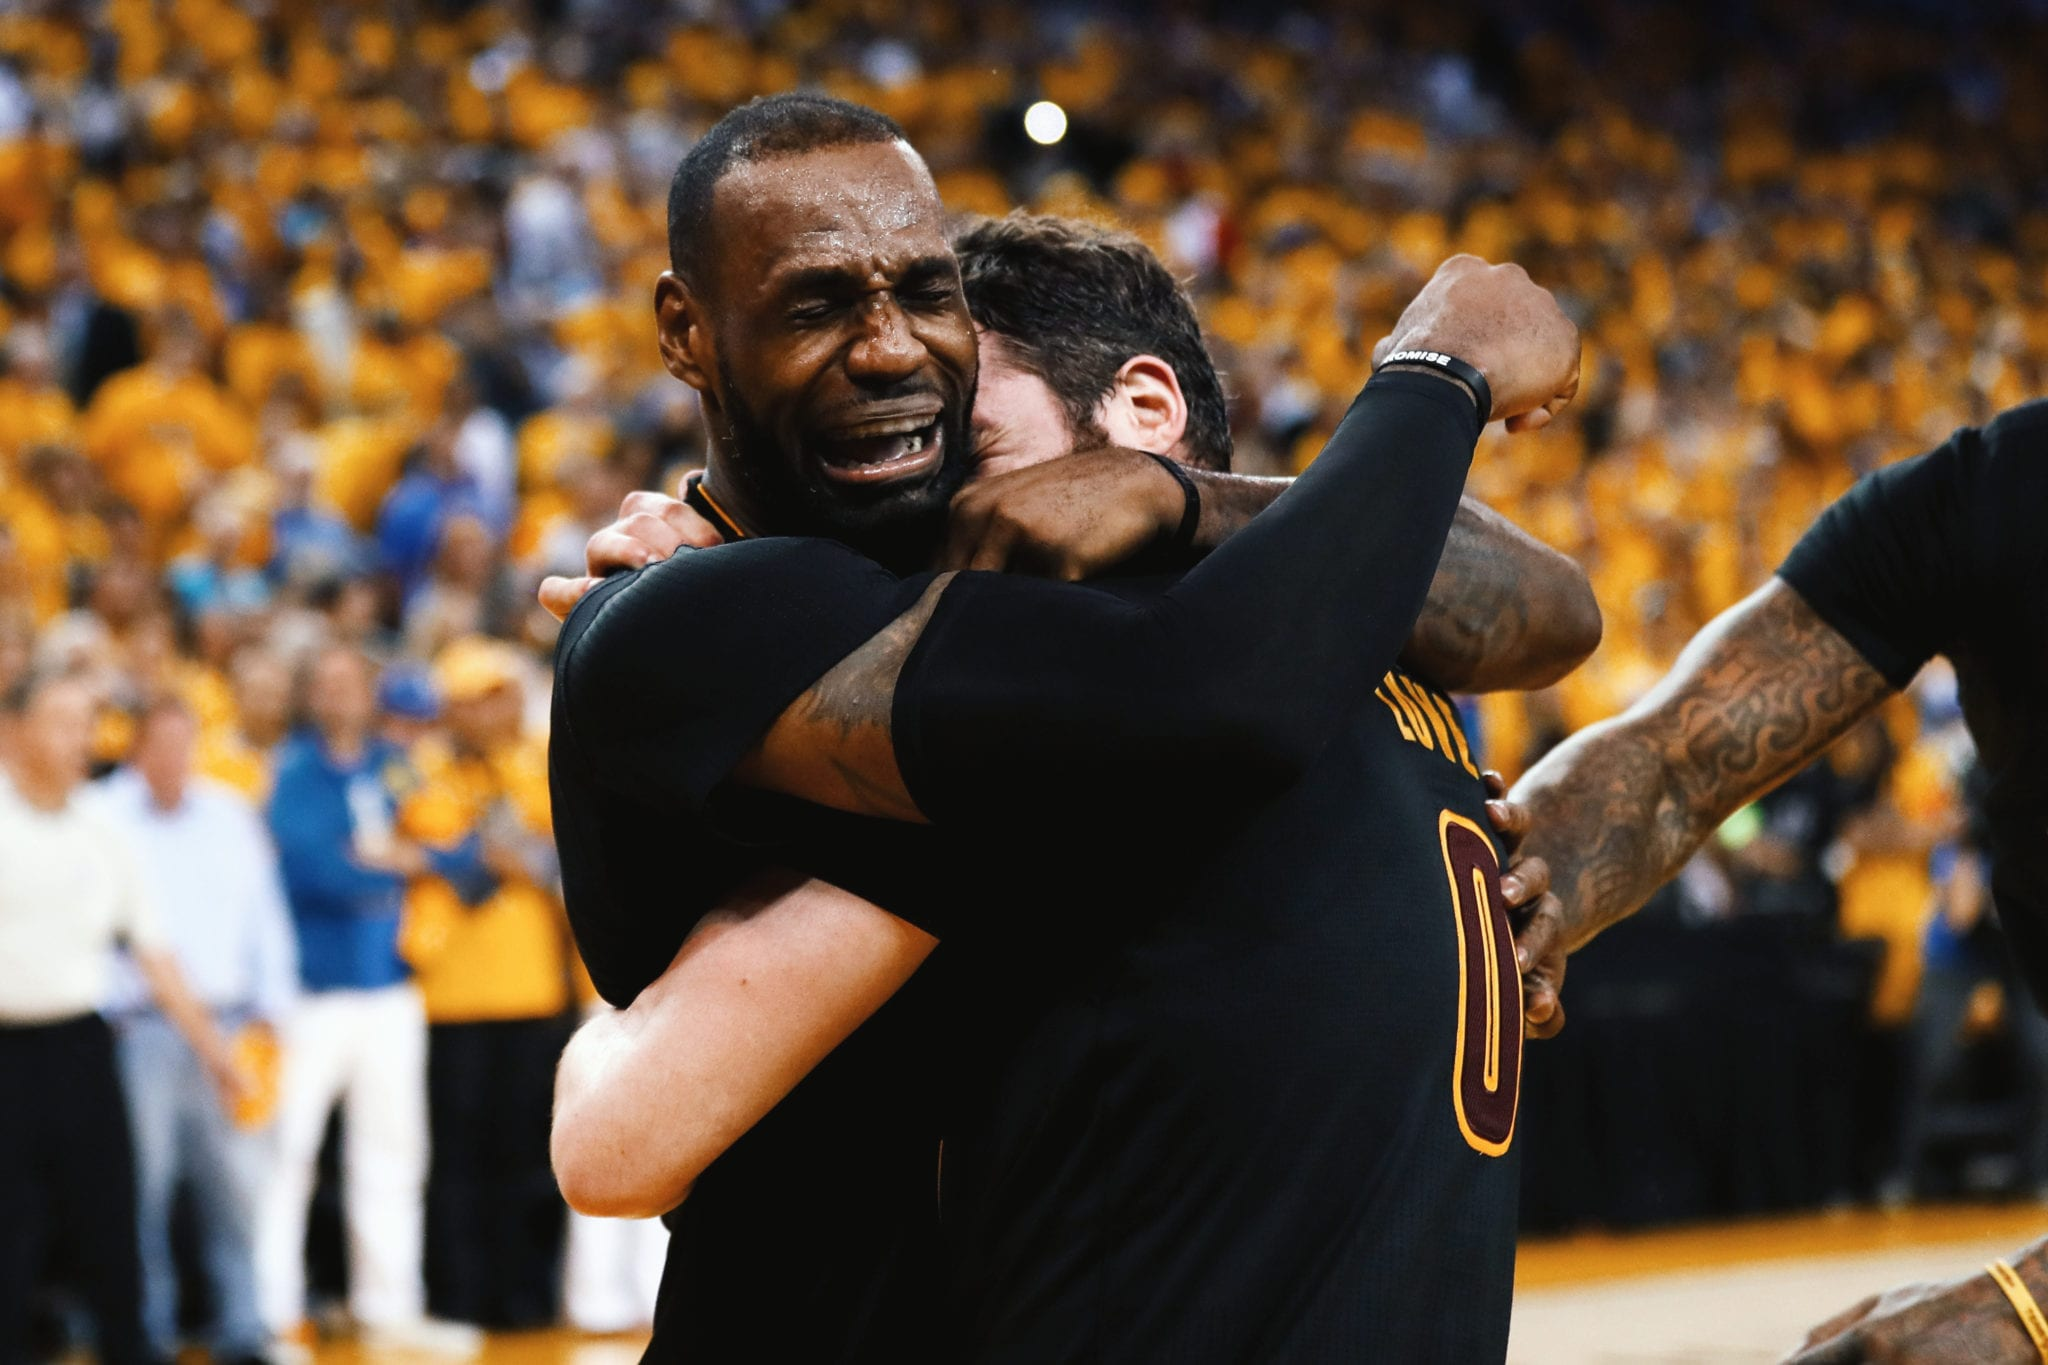 PROMISE KEPT: LeBron James embraces Kevin Love as the Cleveland Cavaliers come back from 3-1 down to win the 2016 NBA championship against the Golden State Warriors (June 19, 2016).